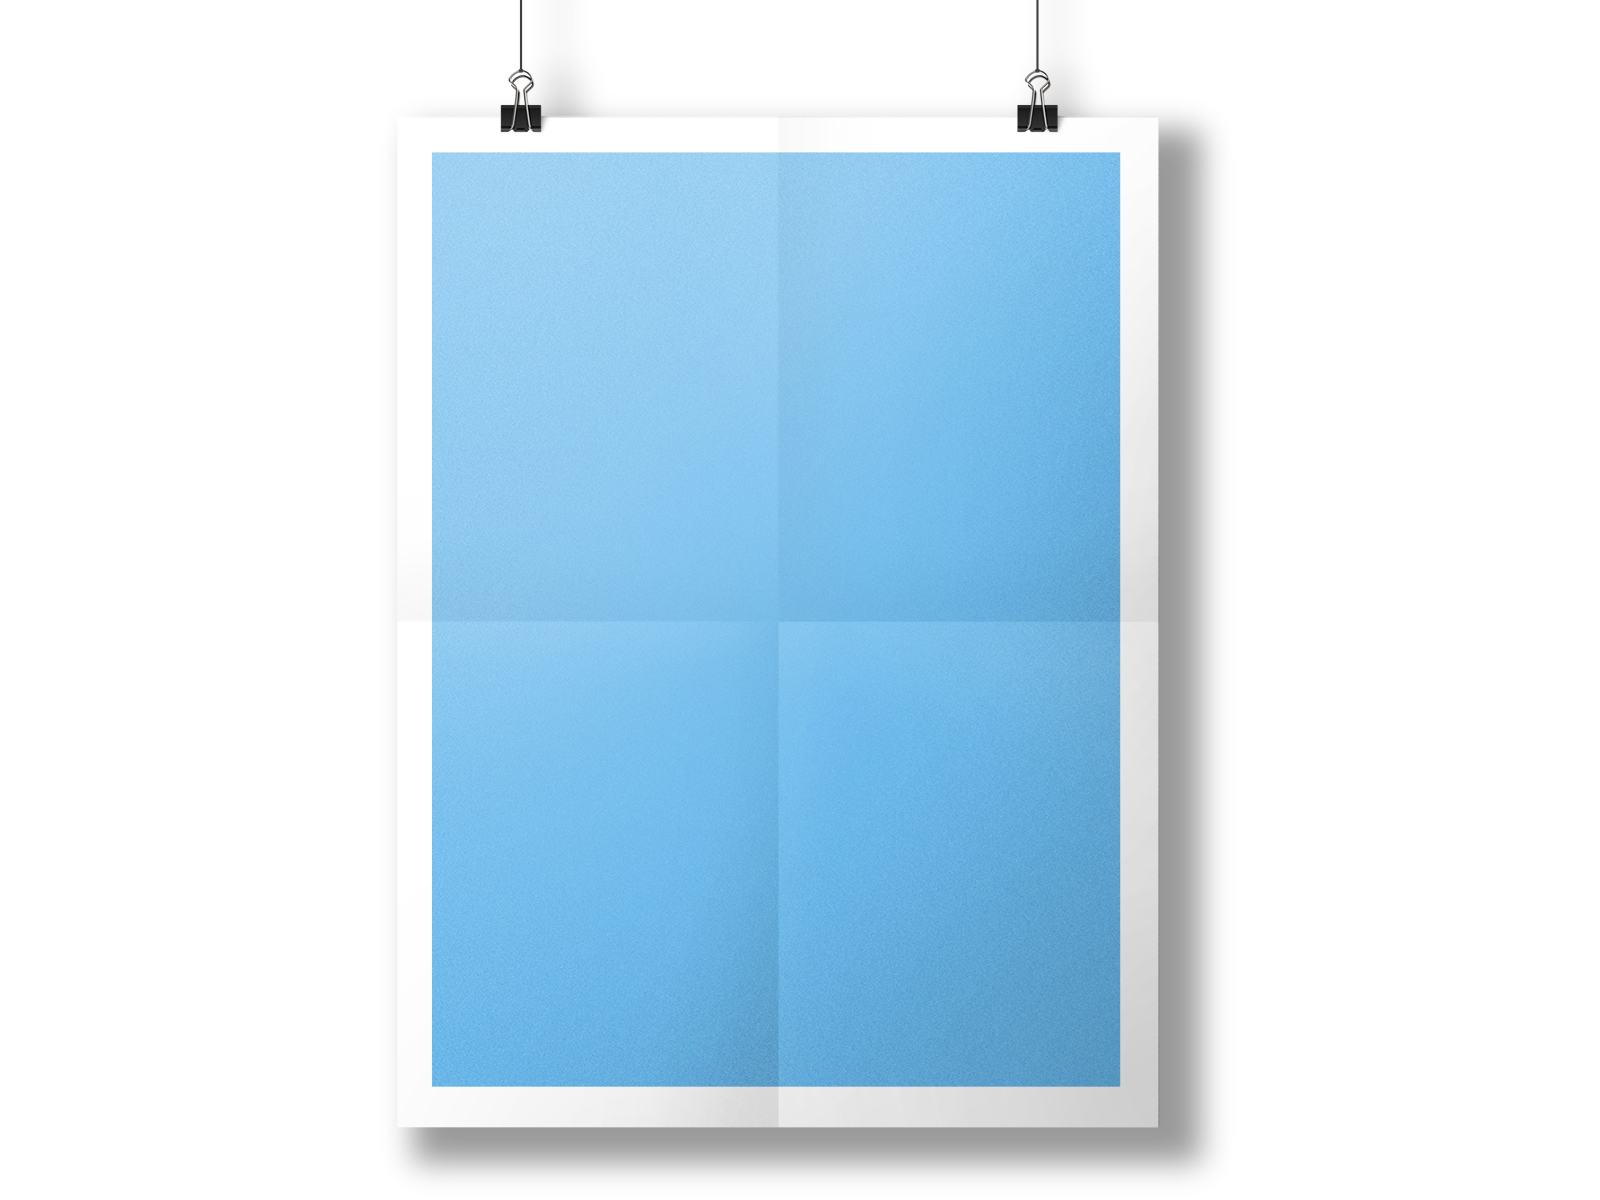 Hanging Paper Poster Mockup Ppt Backgrounds 3d Blue